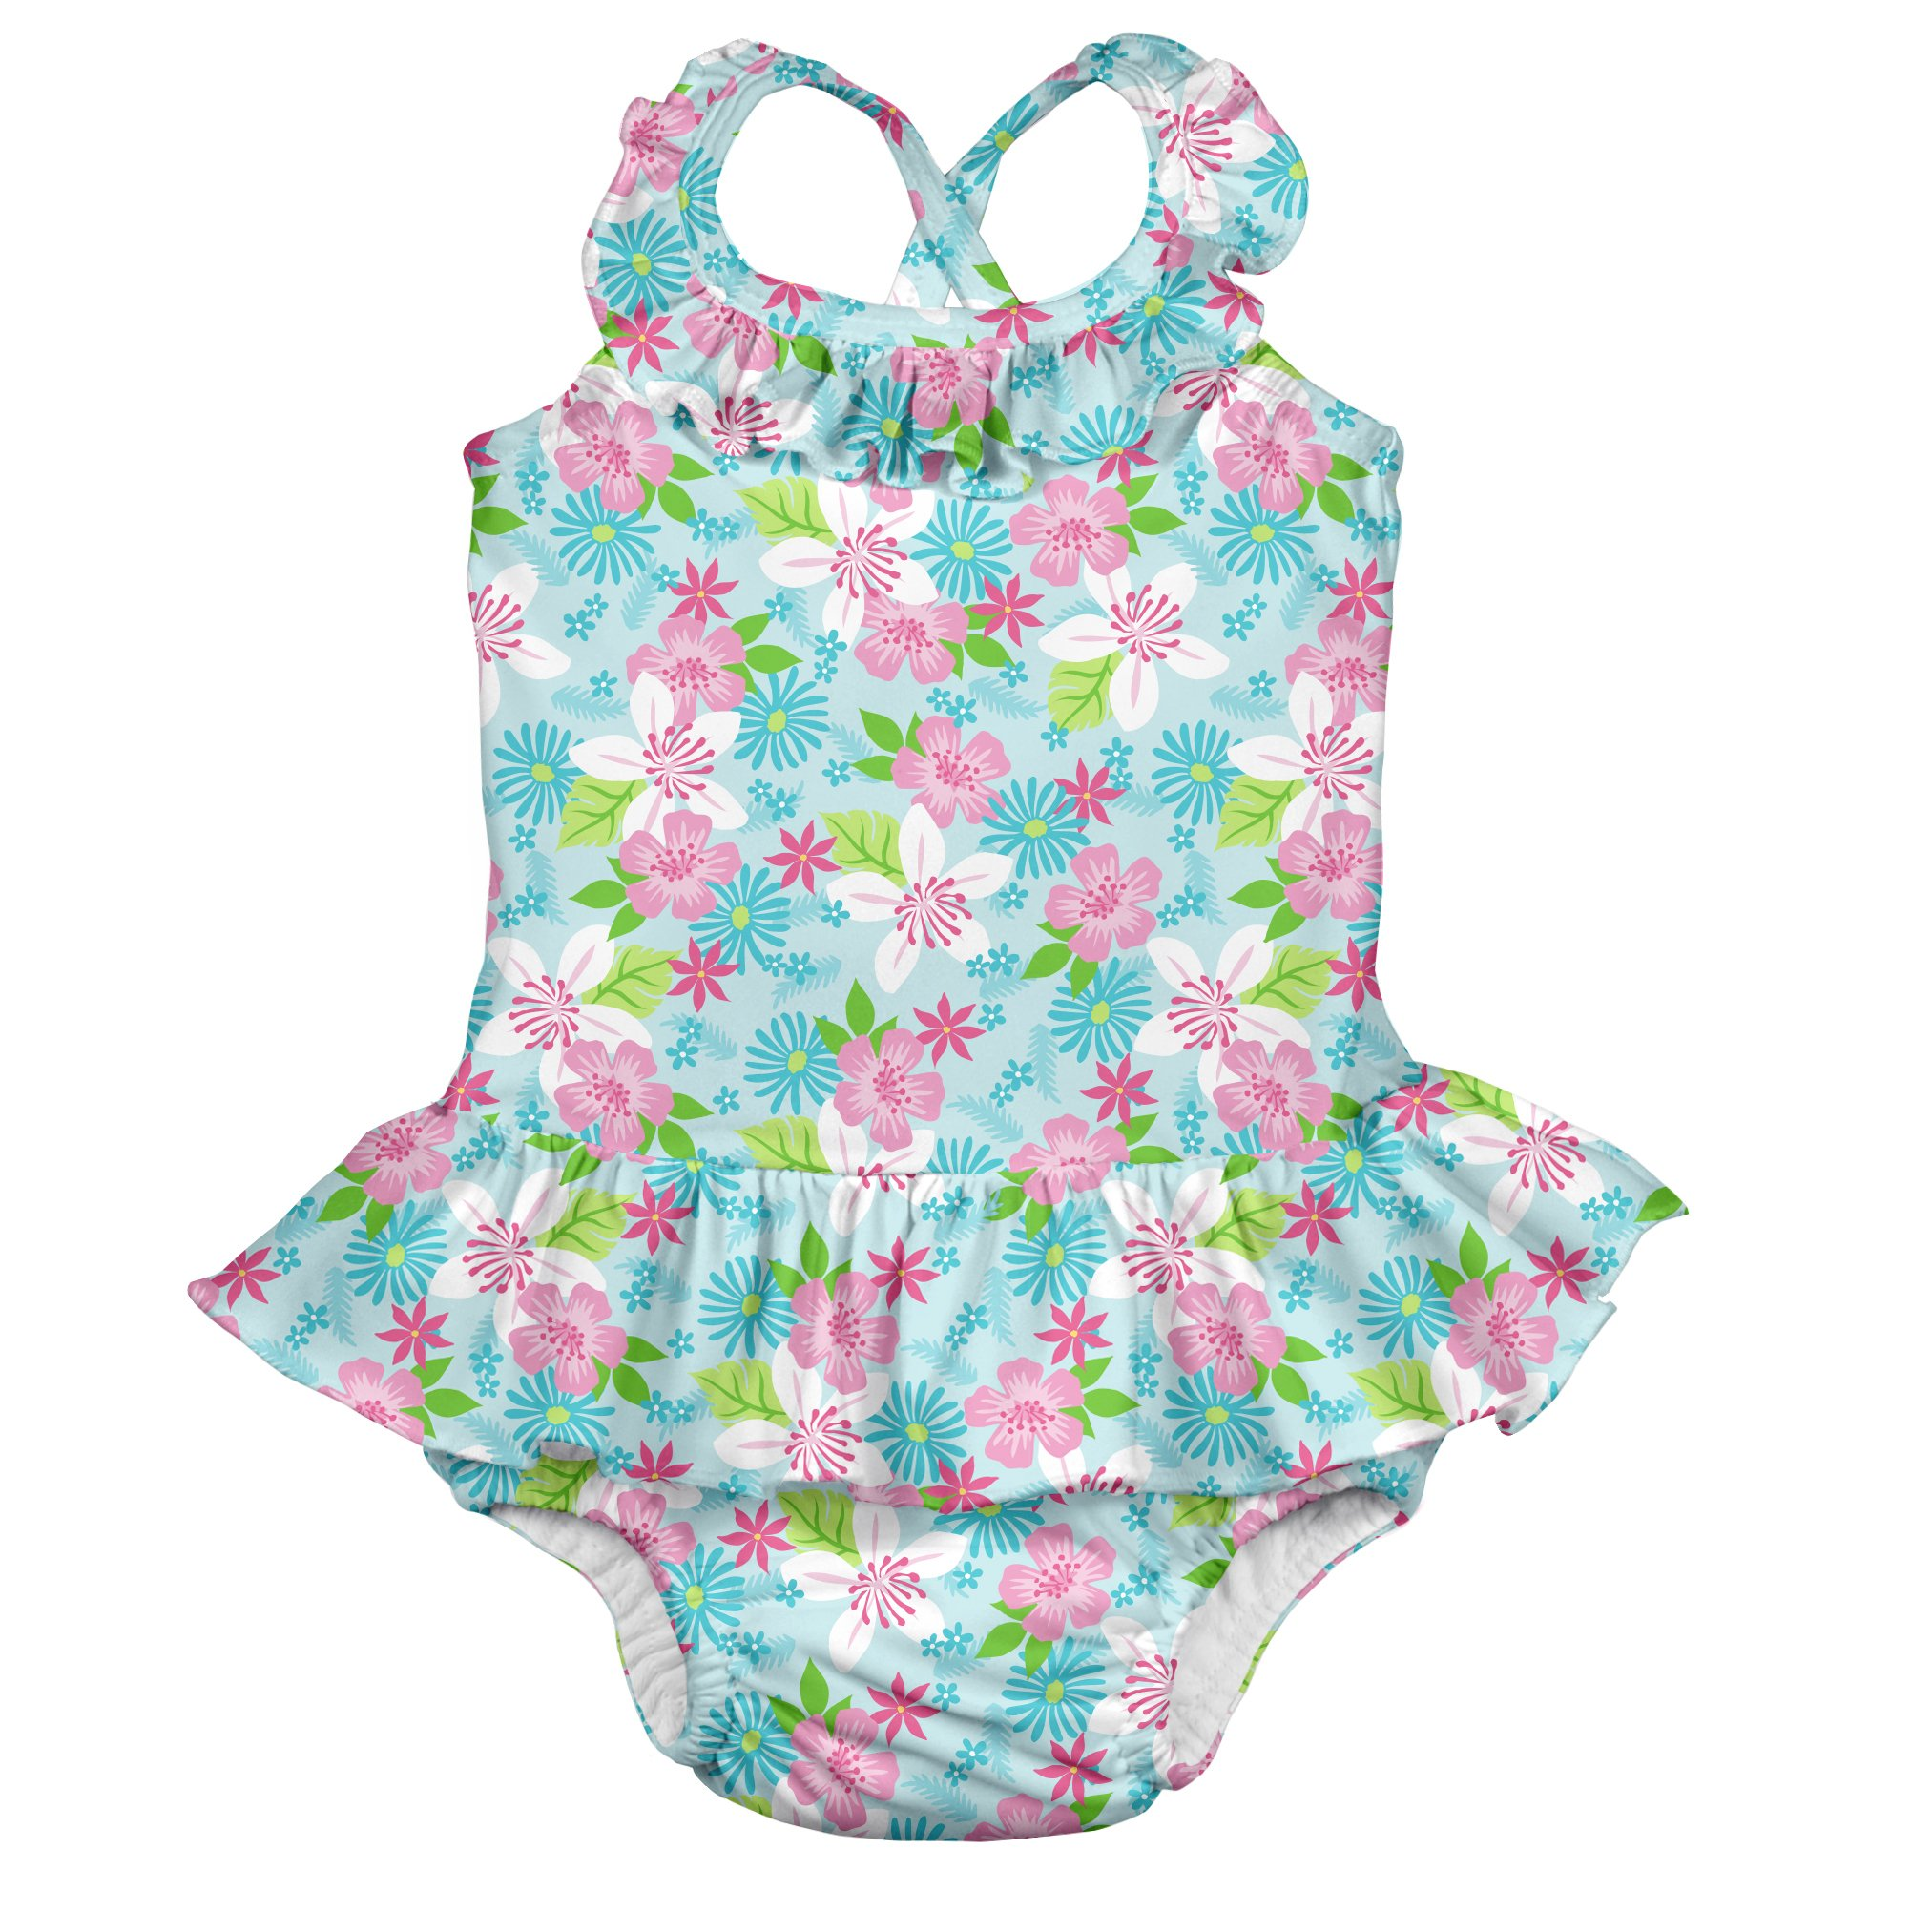 i play. Girls' 1pc Ruffle Swimsuit with Built-in